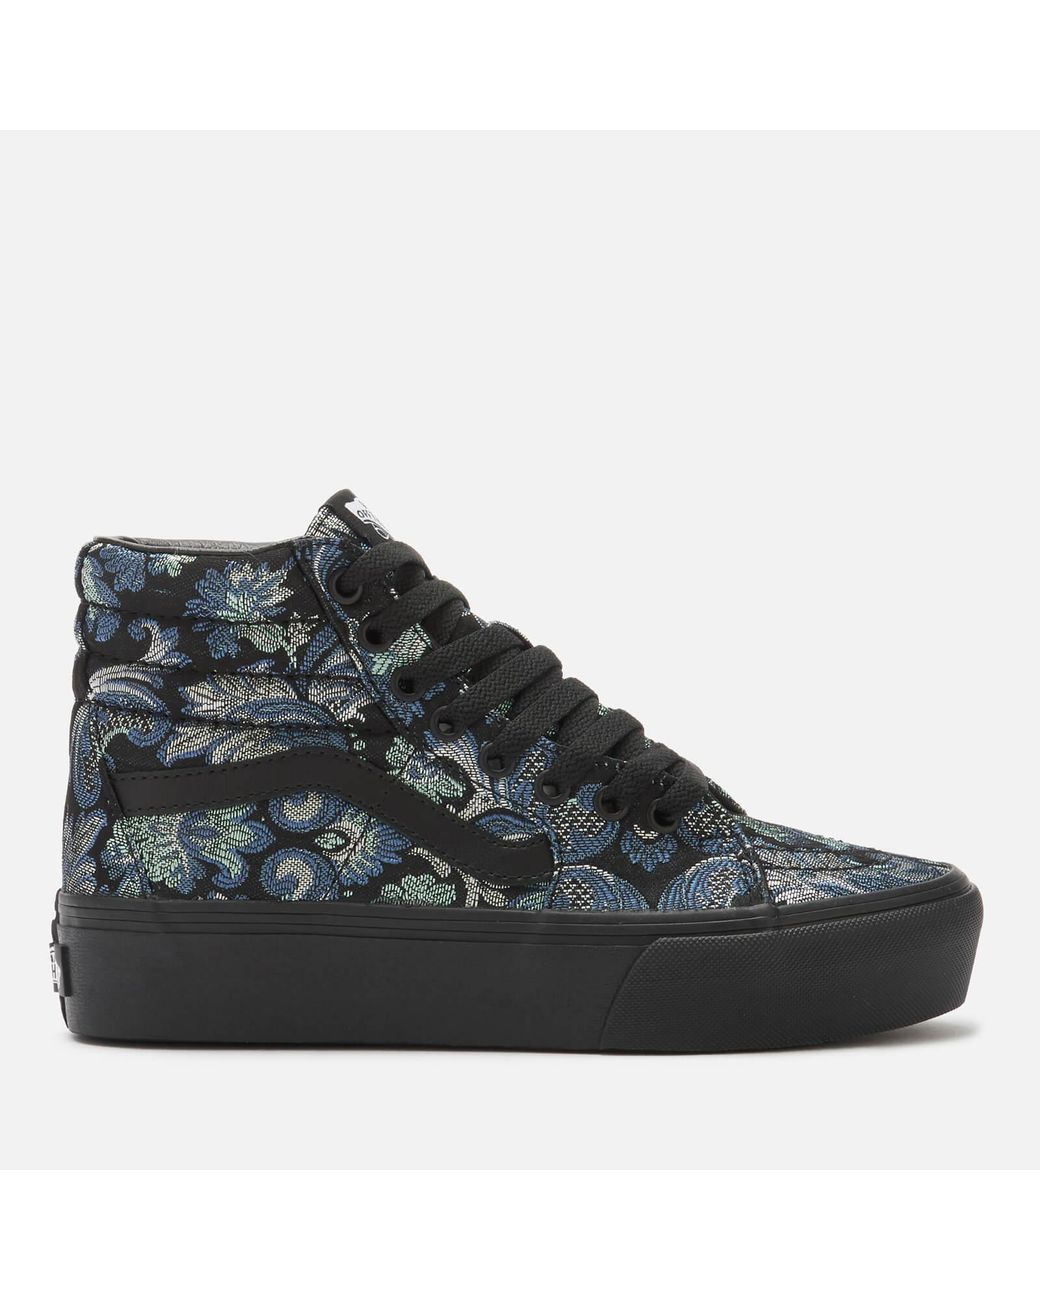 399e59ffbf Long-Touch to Zoom. Long-Touch to Zoom. 1  2  3  4. Vans - Black Daring  Damsels Platform 2.0 Sk8-hi ...